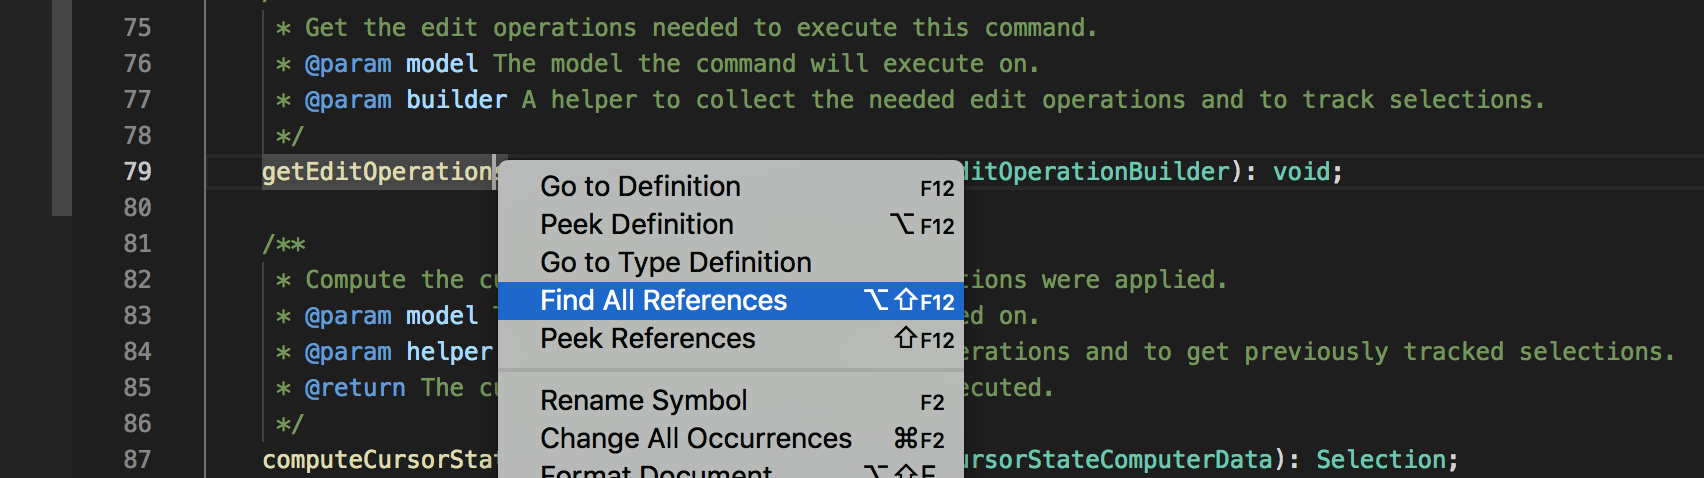 Visual Studio Code: Find All References